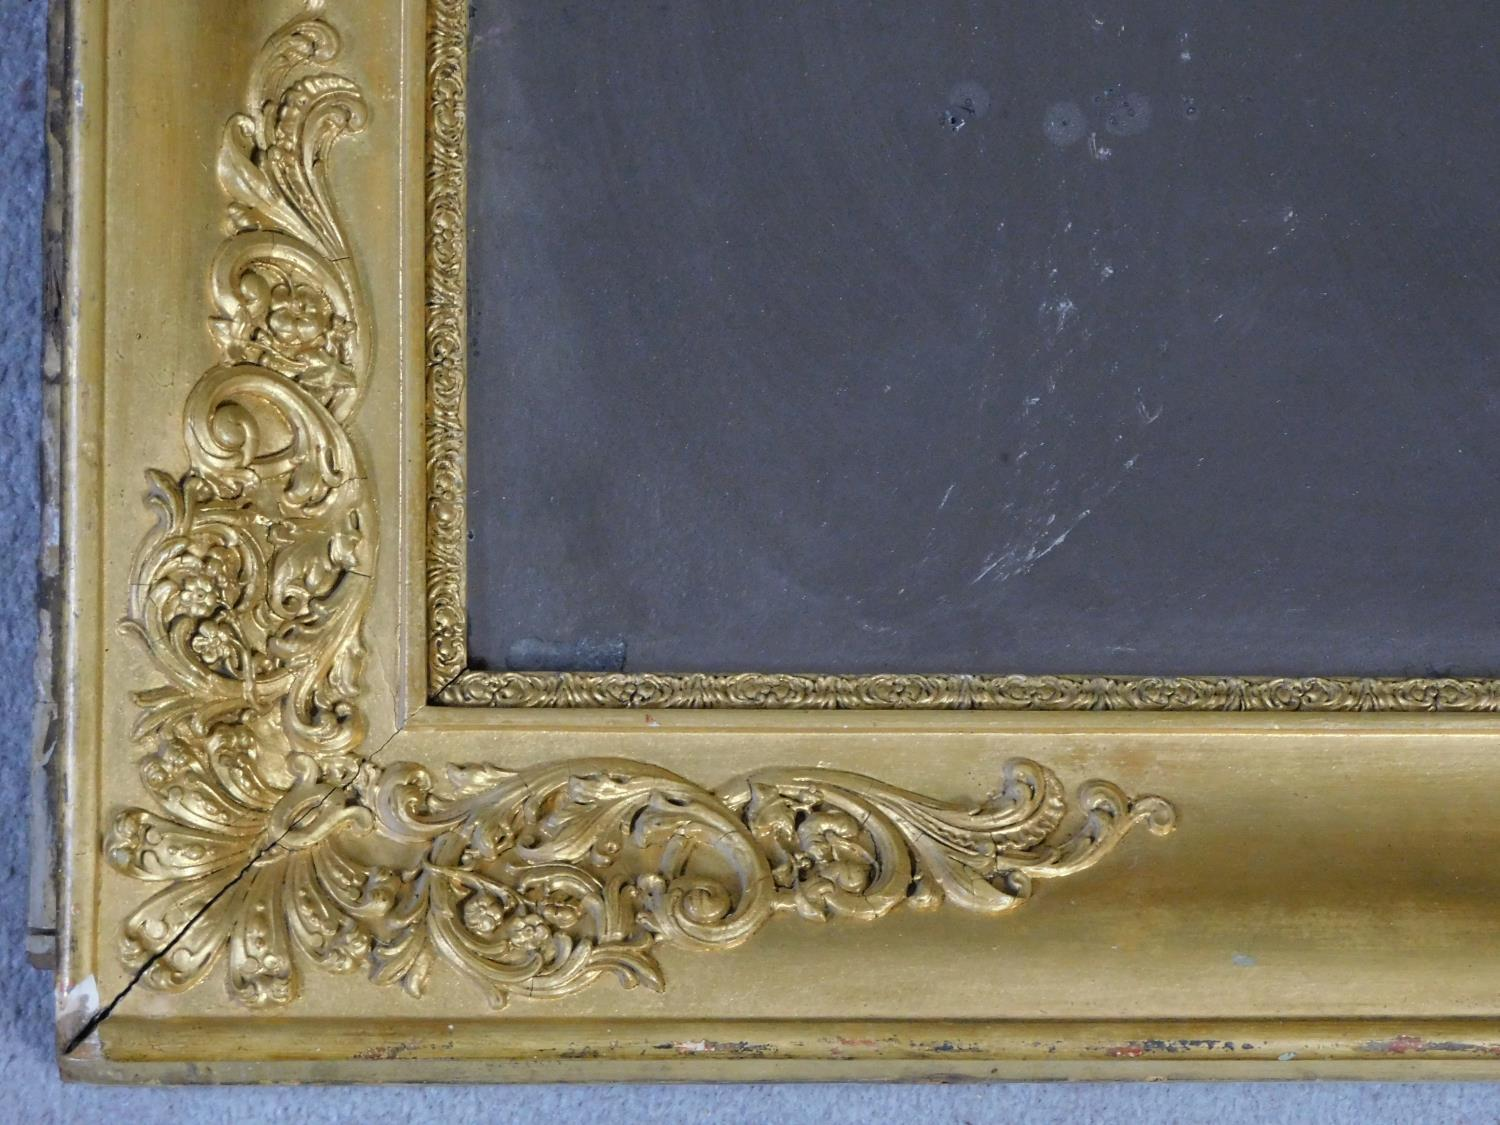 A very large early 19th century gilt framed and gesso moulded pier mirror with its original glass - Image 3 of 9